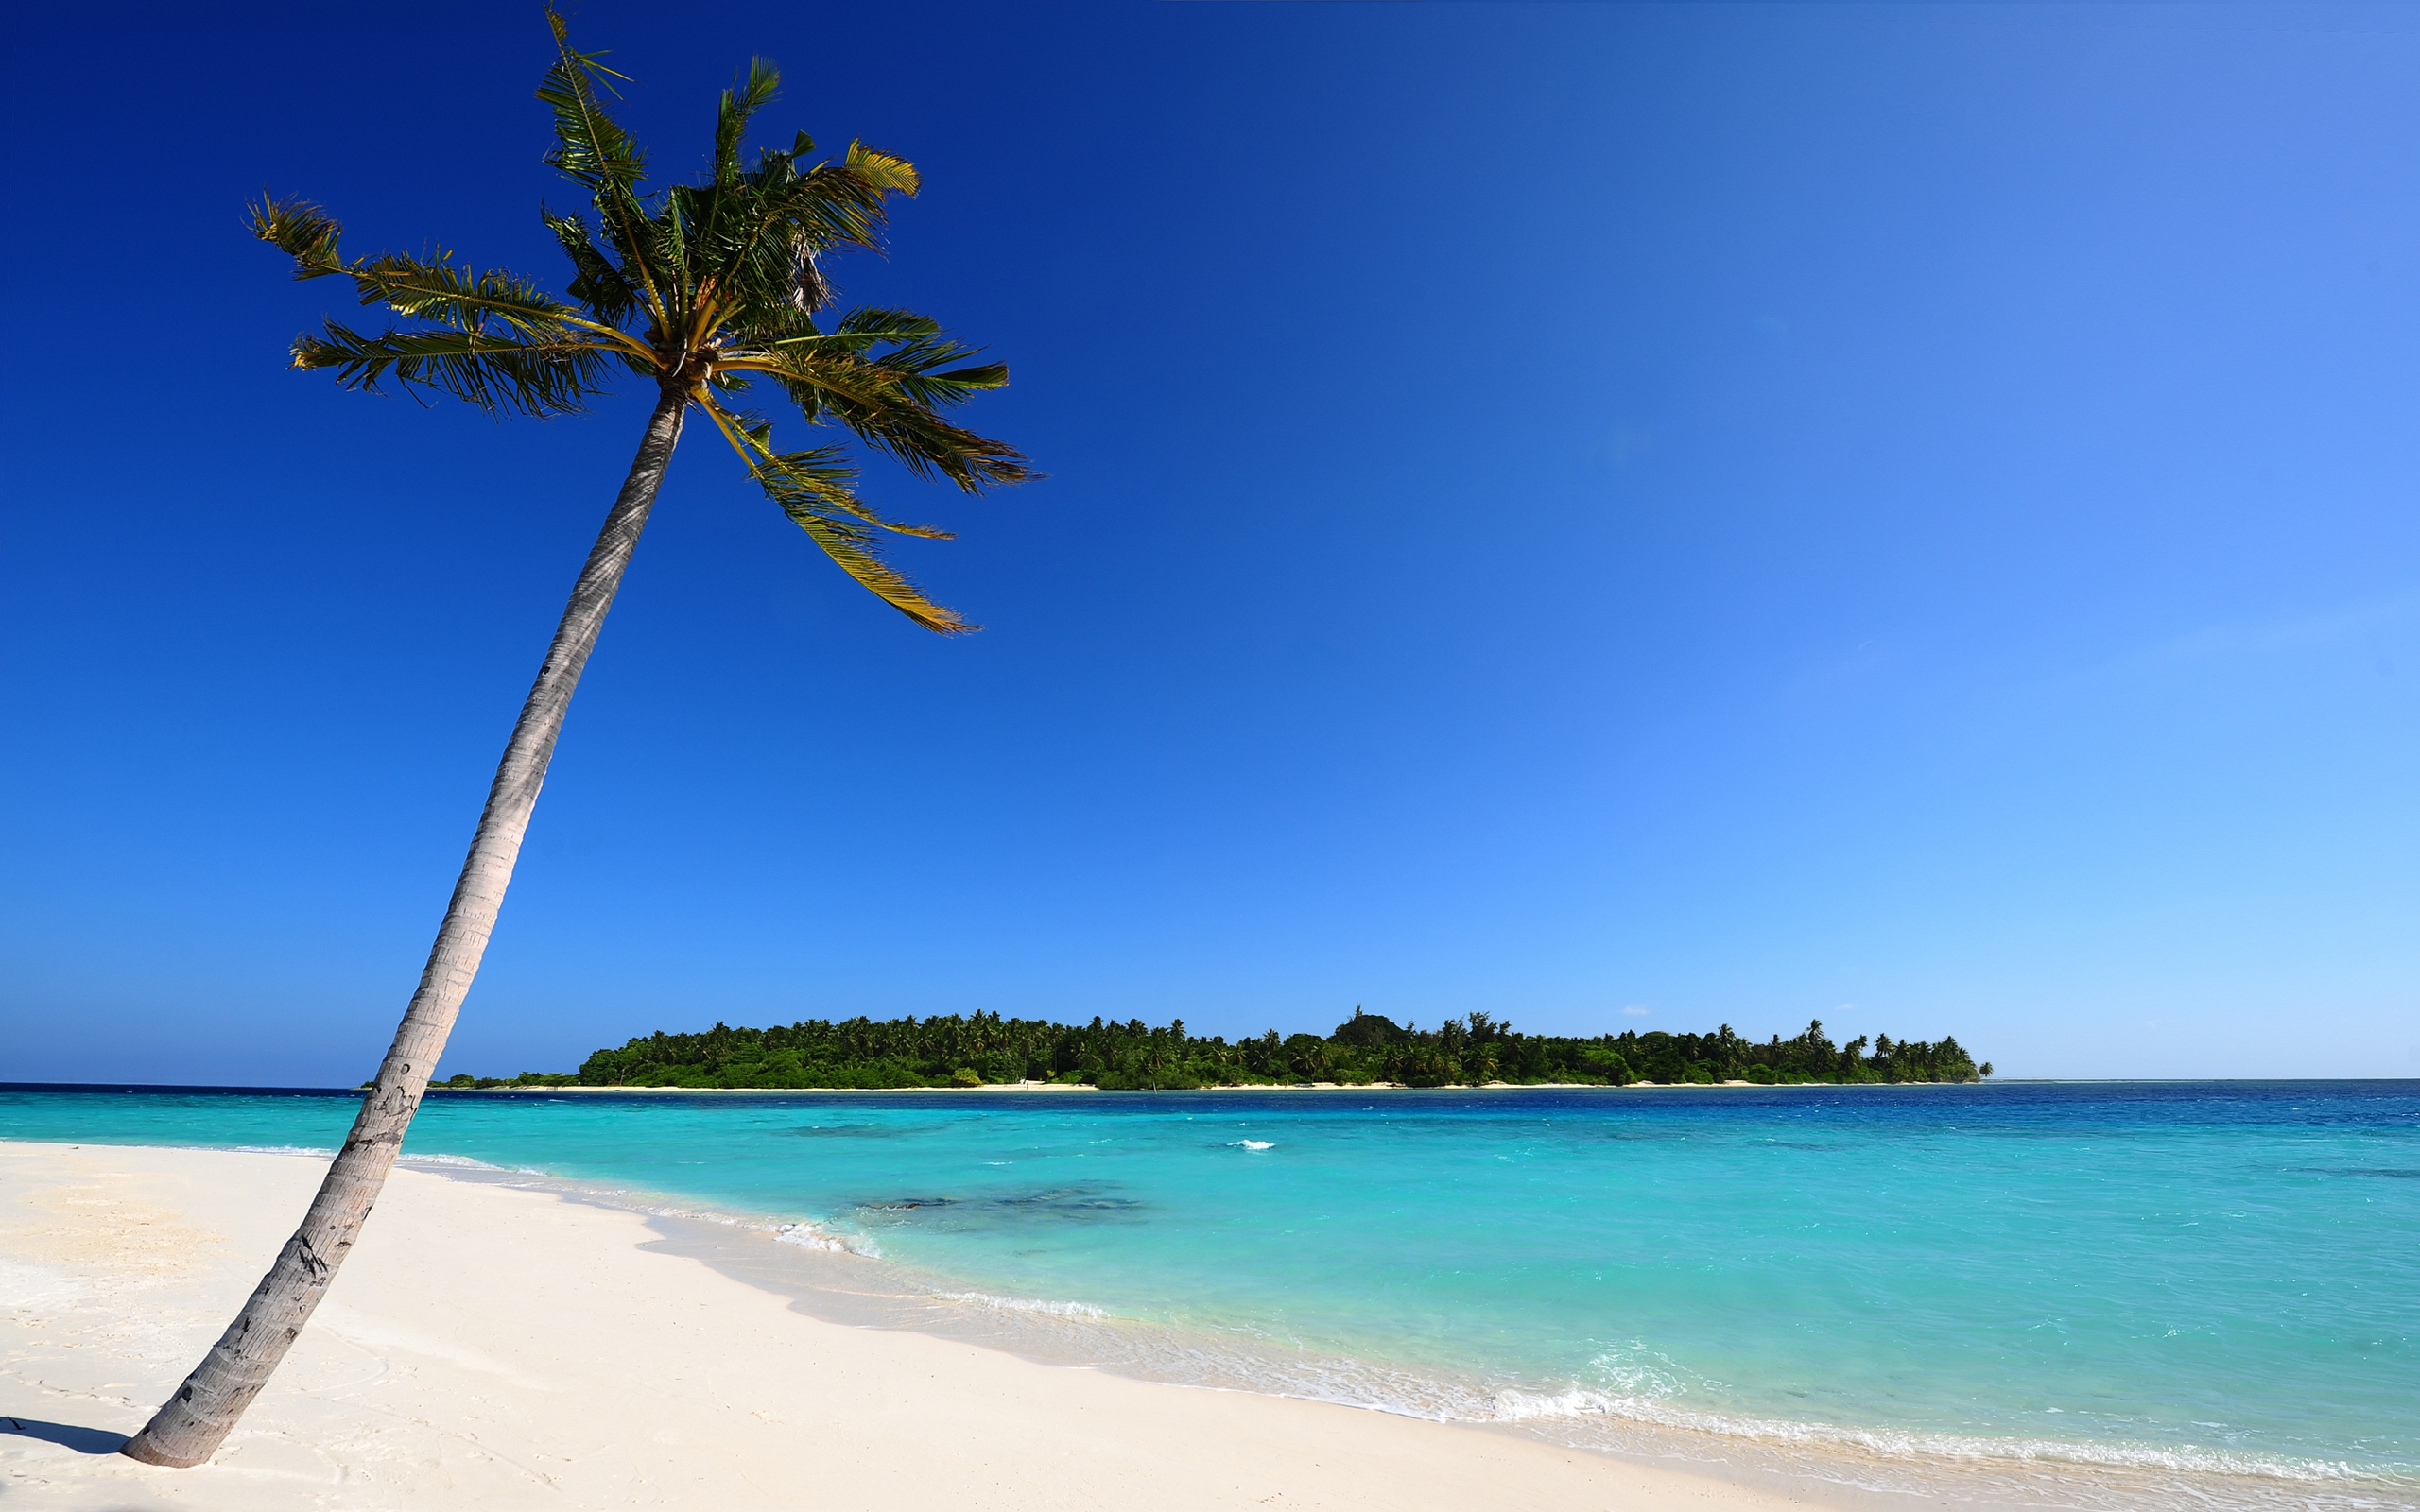 Beautiful Beach Wallpaper   Wallpaper High Definition High Quality 2560x1600